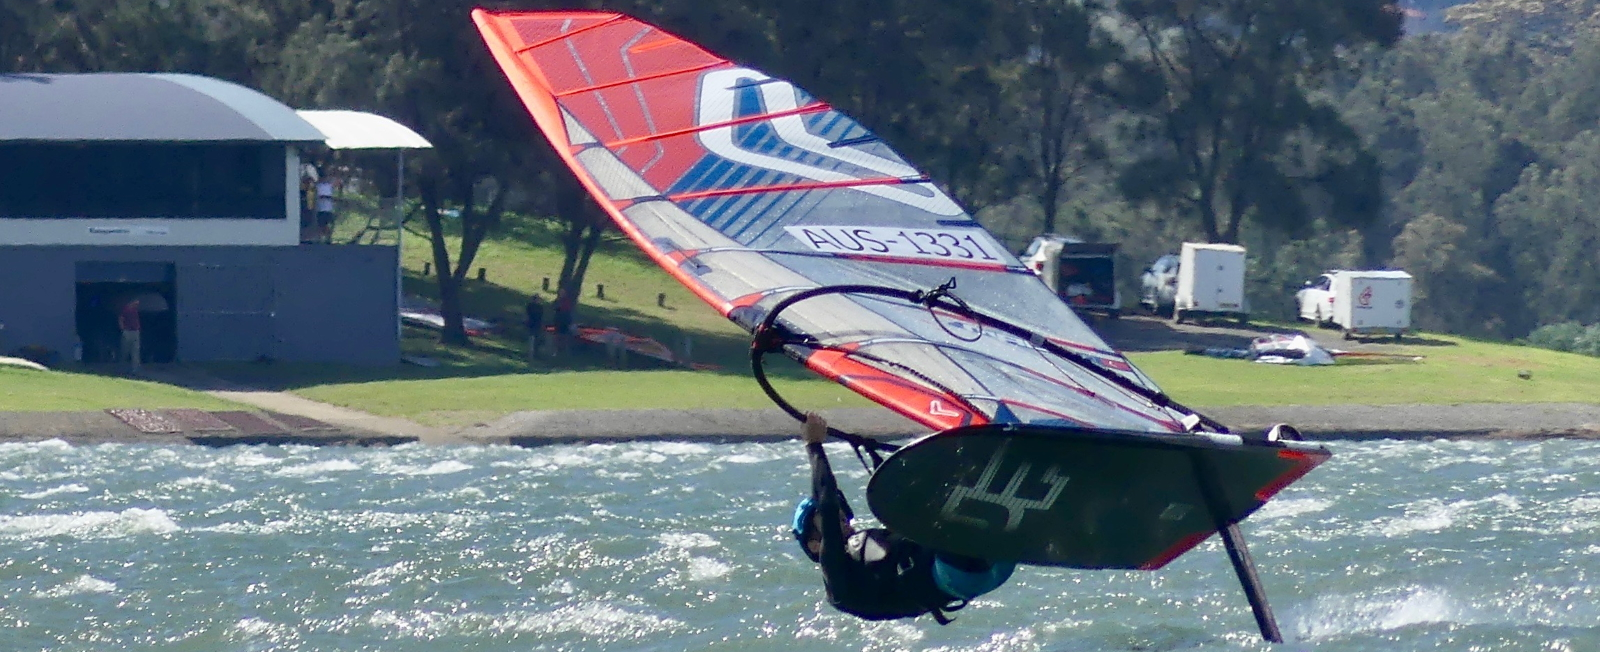 Foiling Nationals